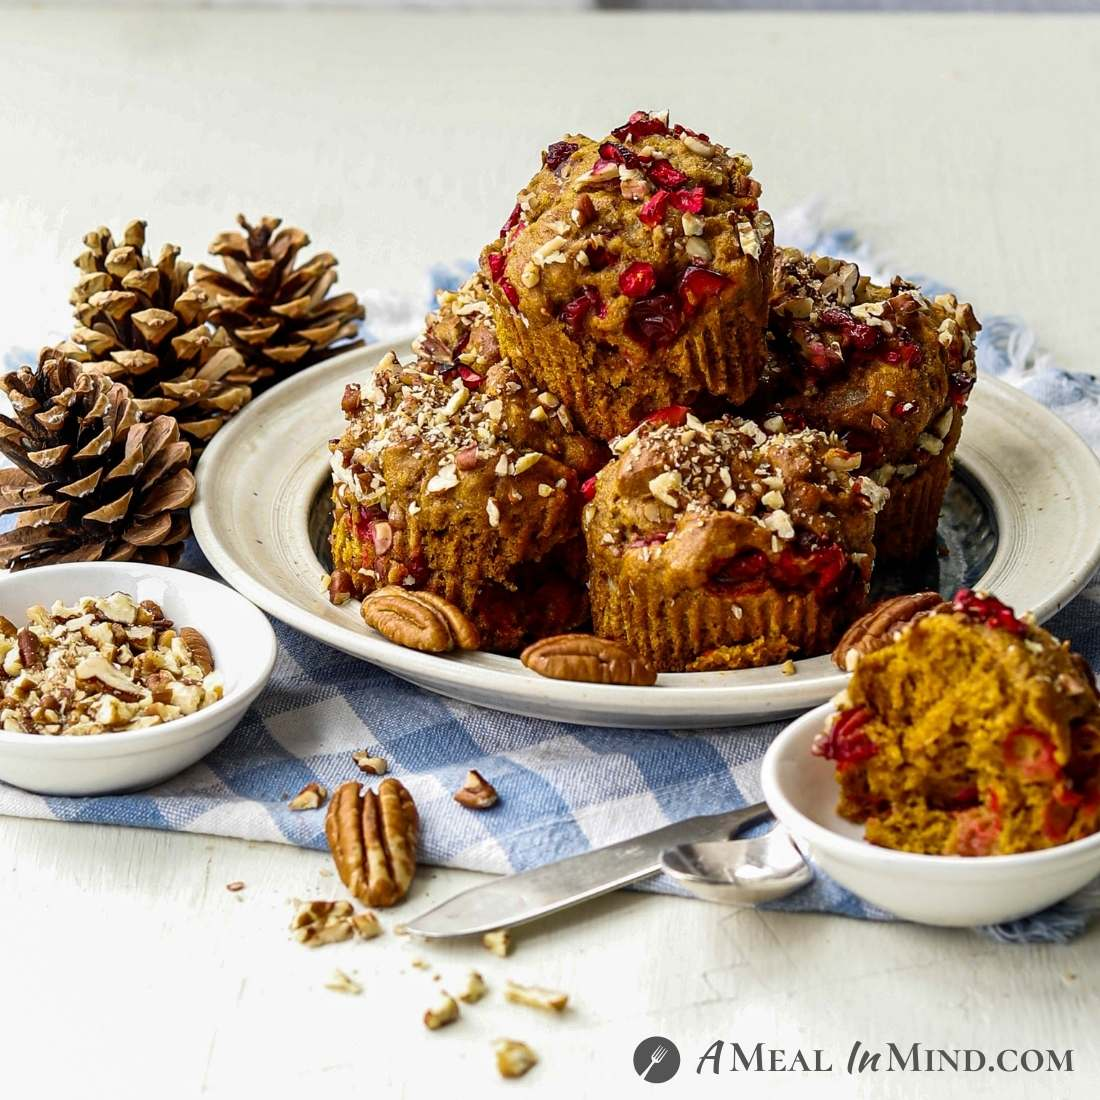 Cranberry-Pecan Pumpkin Muffins on ivory plate with scattered pecans